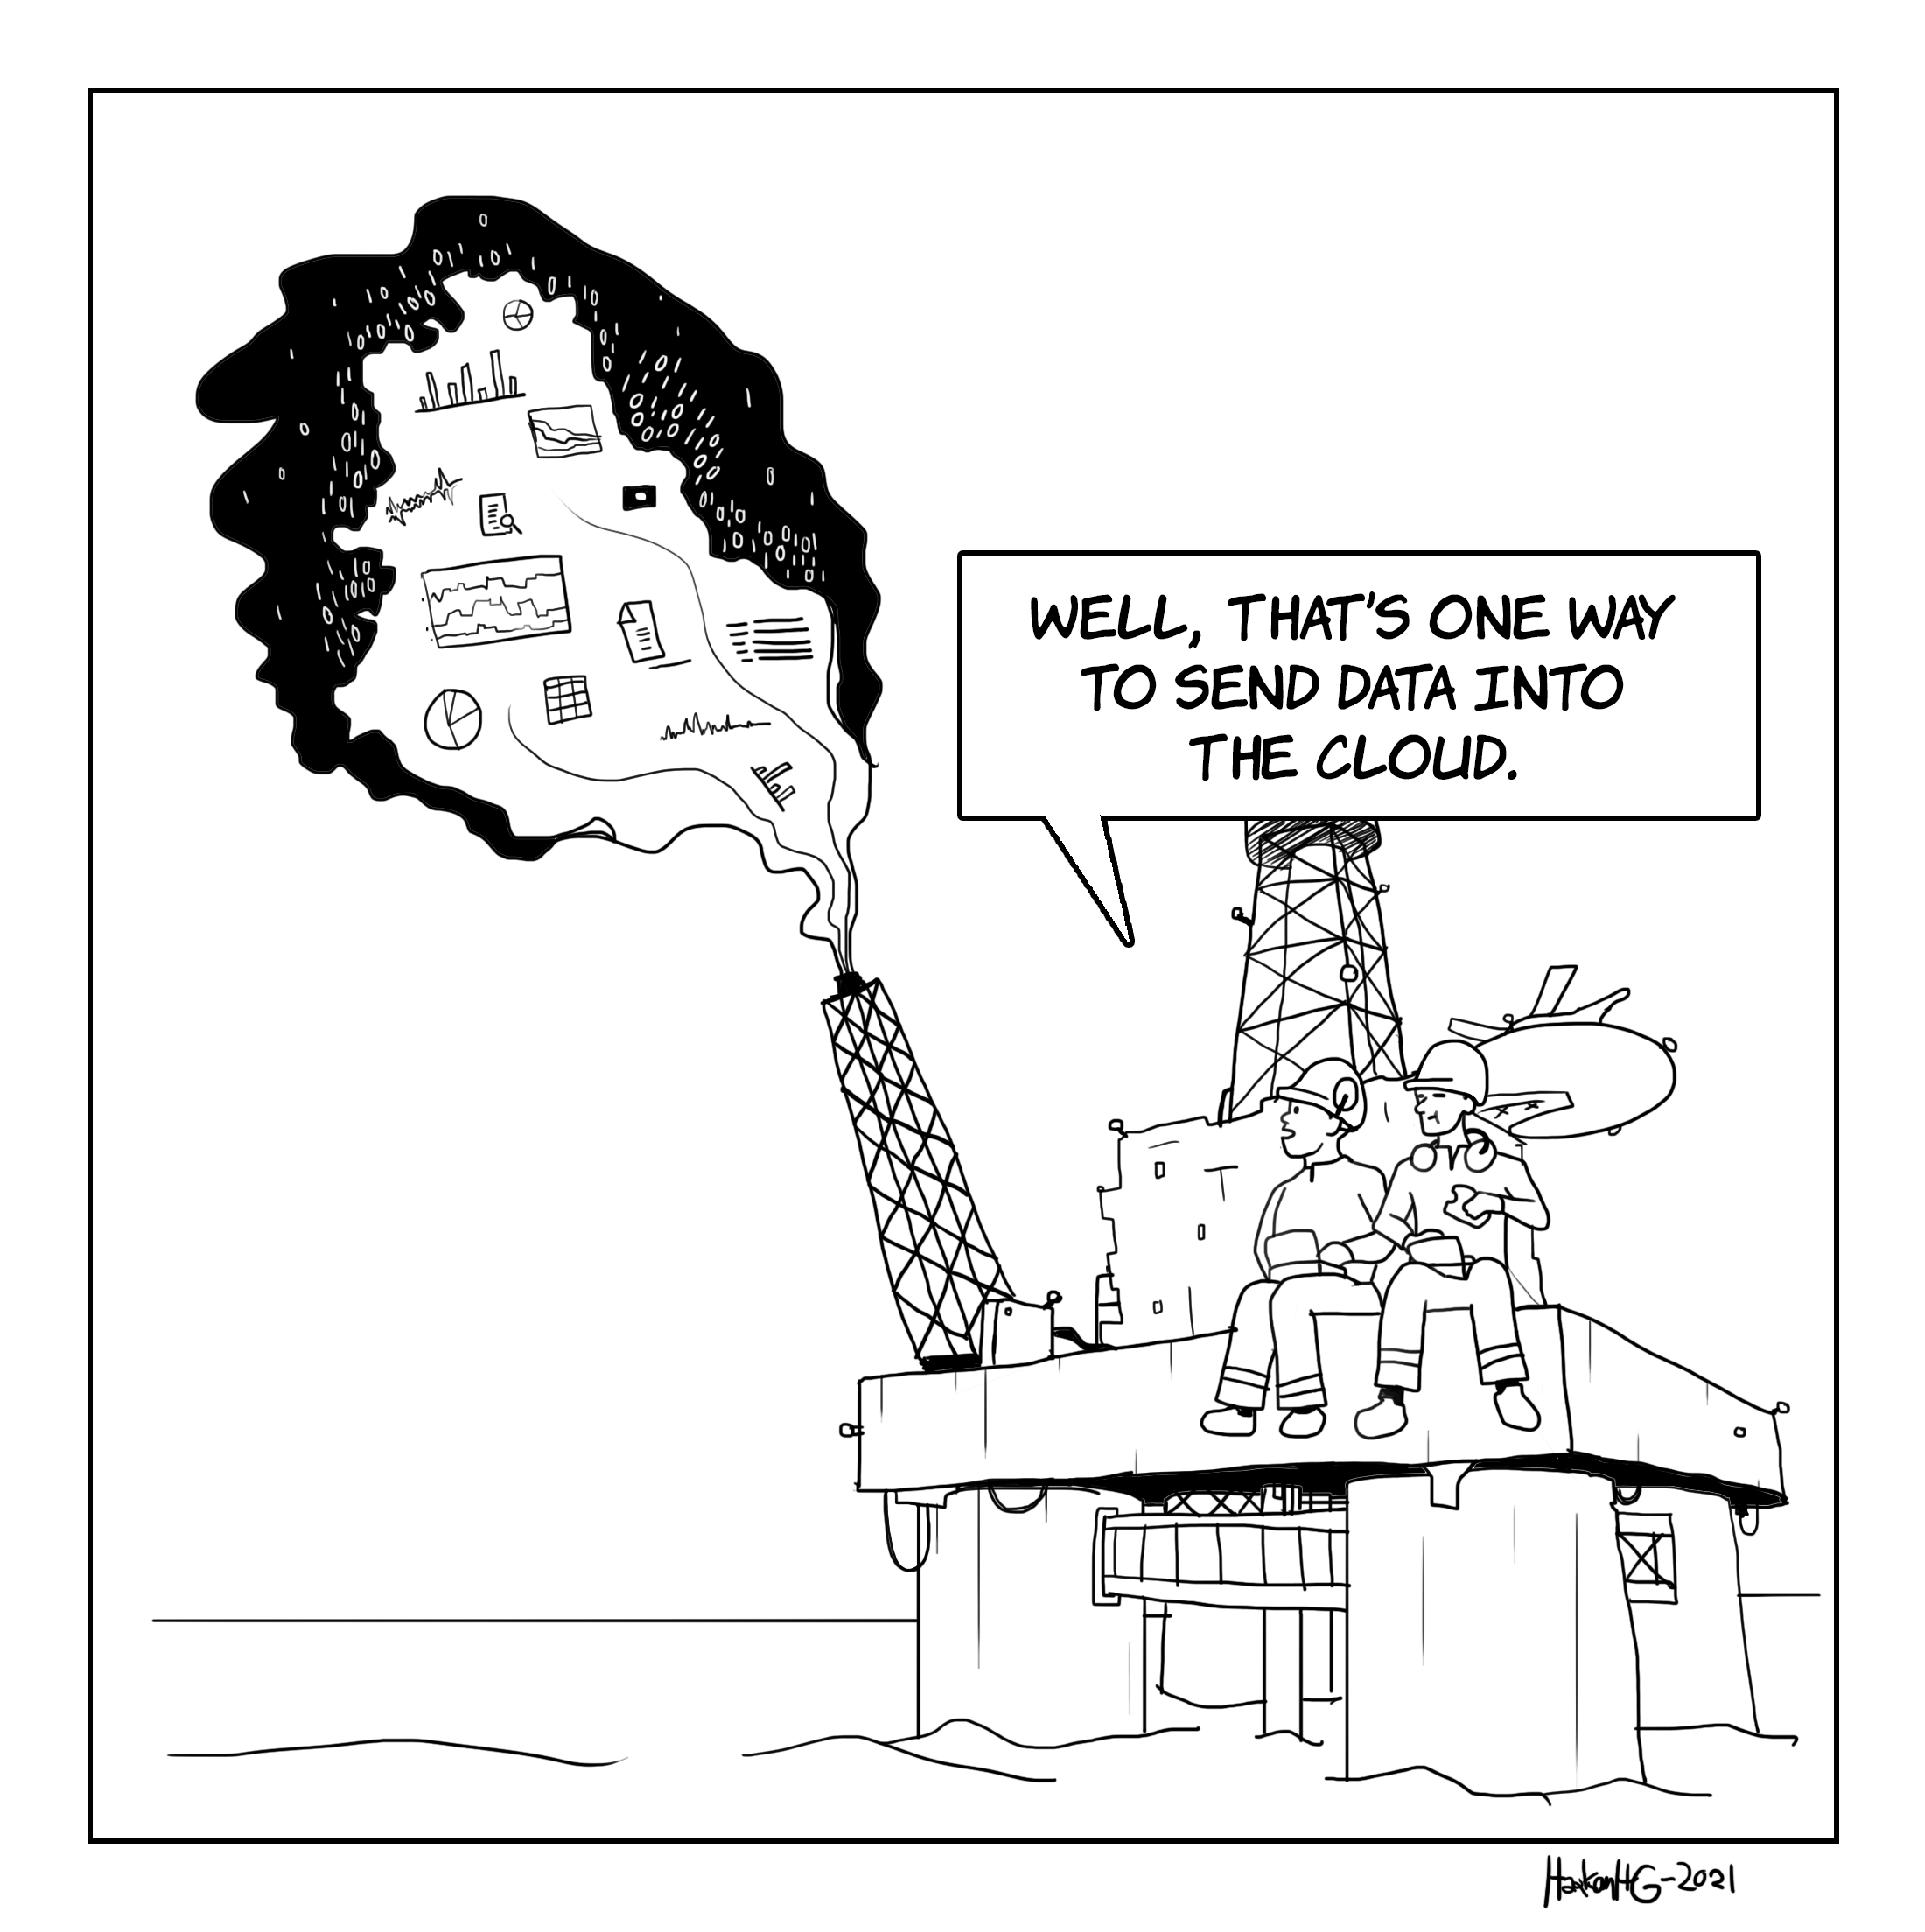 Comic - Well that's one way to send data into the cloud